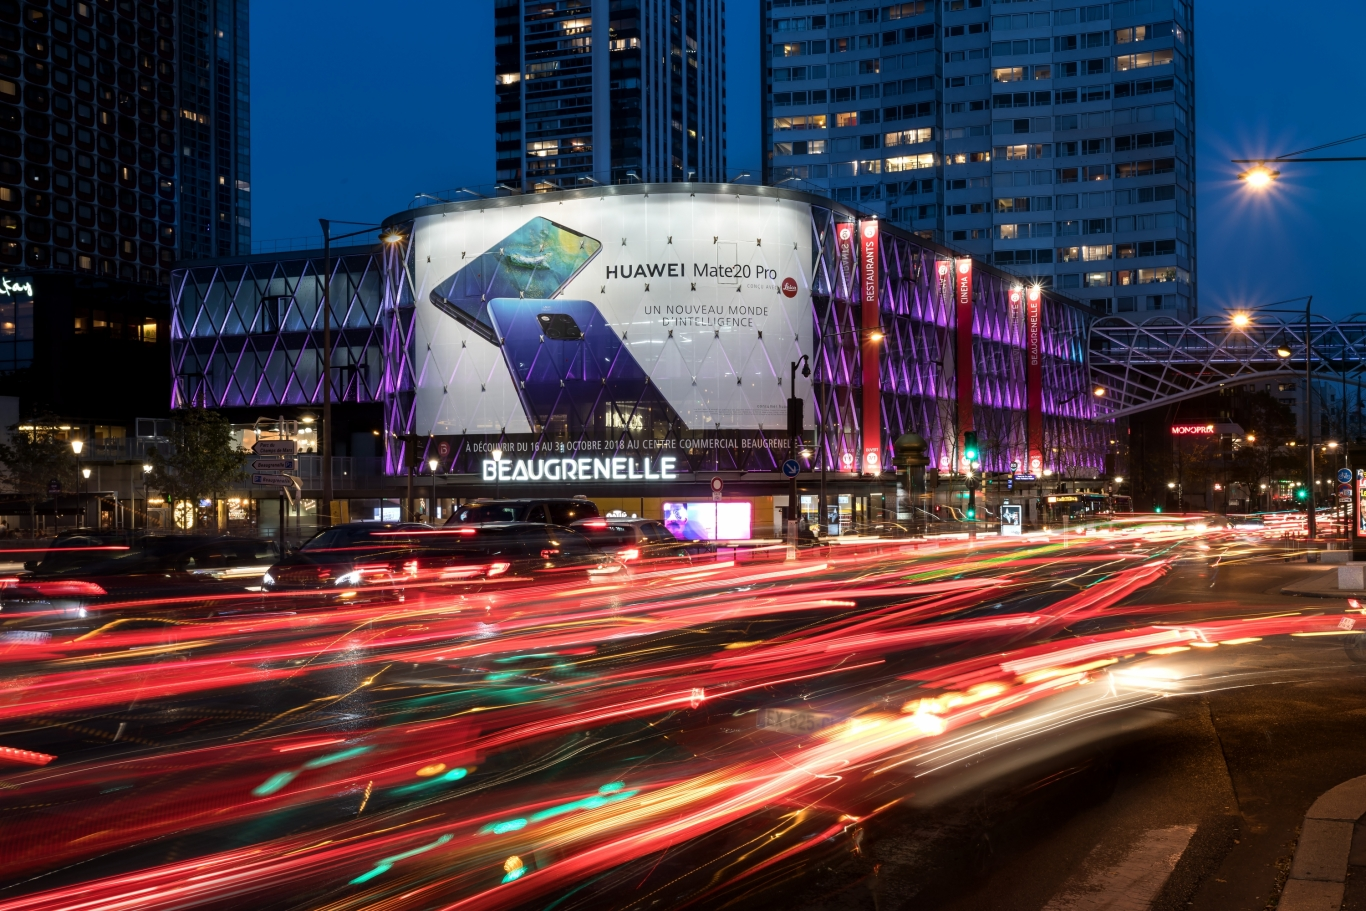 BeaugrenelleJcdecaux S'installe France Au Centre Huawei Commercial thsrdQC